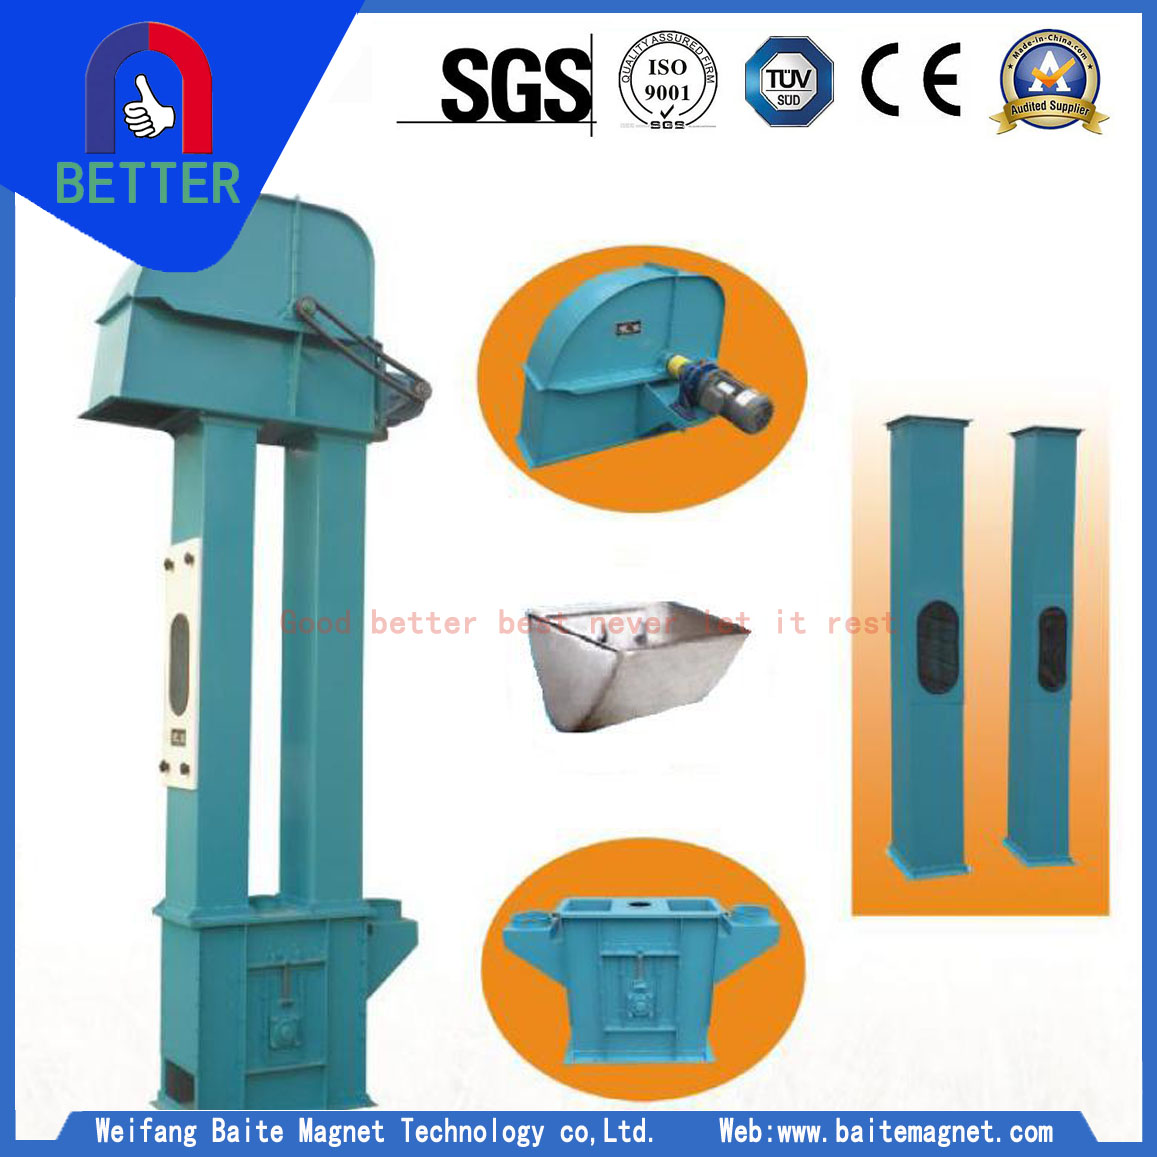 ISO Approved Bucket Elevator Manufacturers In Vietnam - Baite Magnet